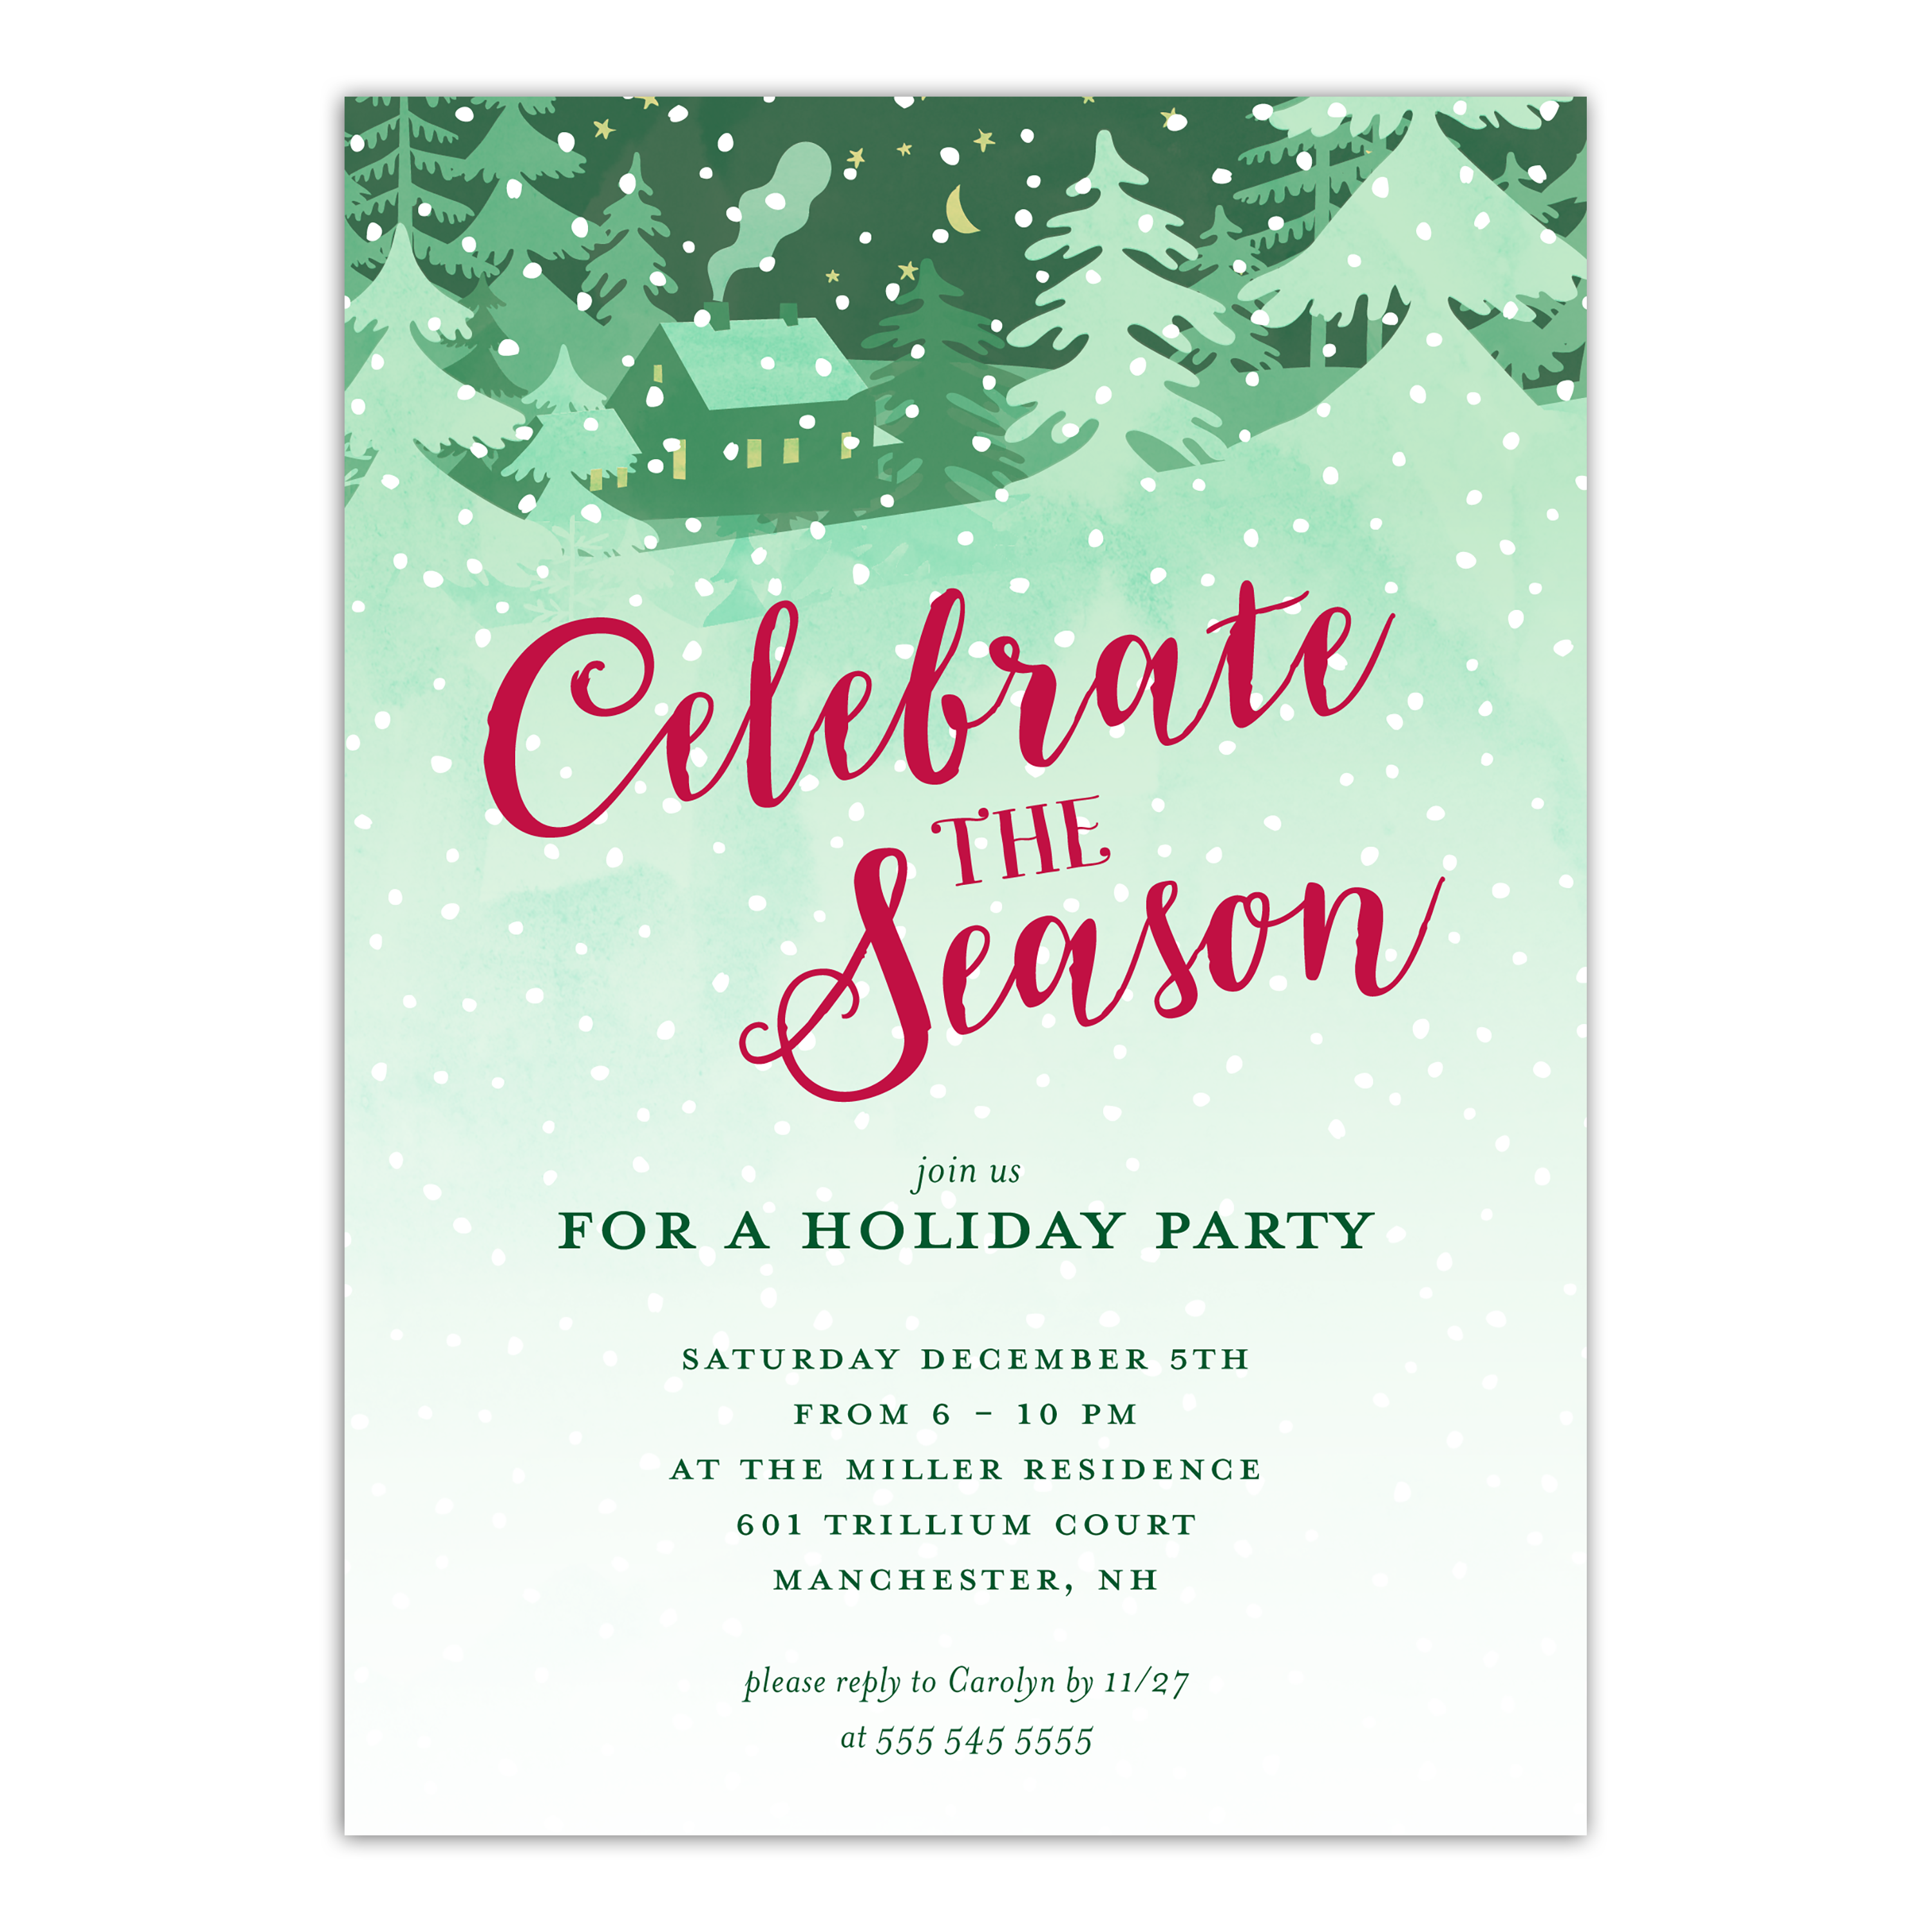 Personalized Holiday Invitation - Winter Warmth